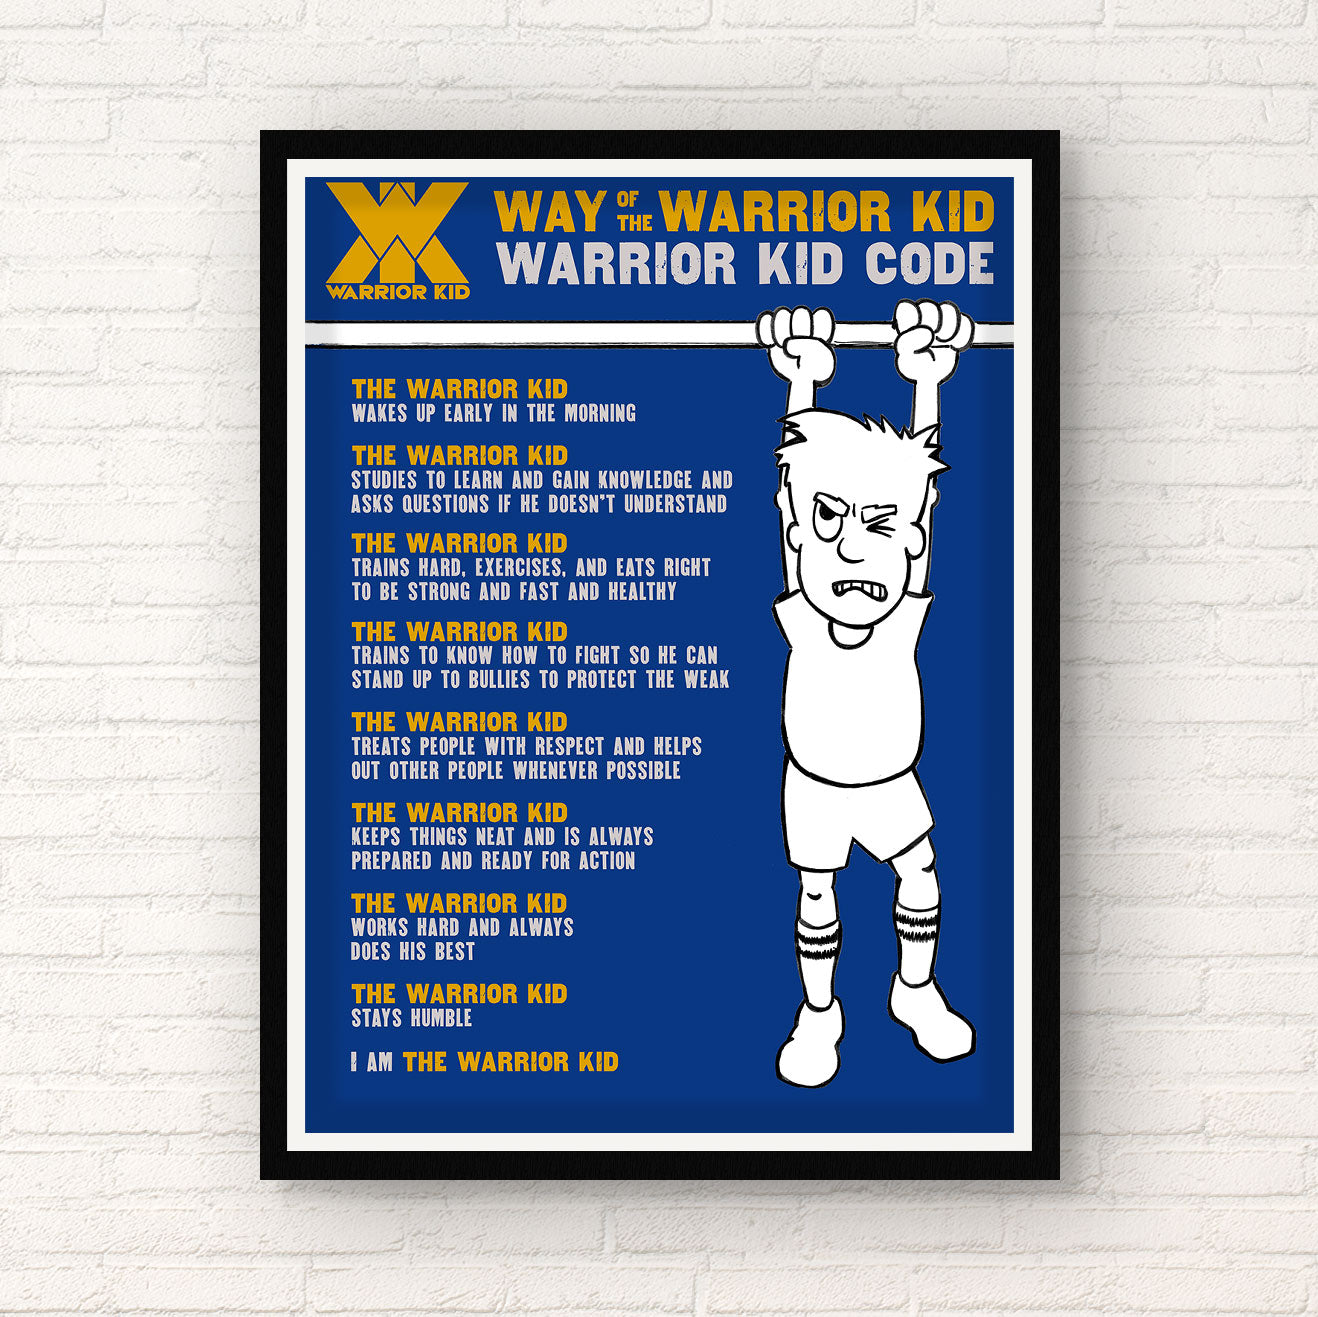 [SIGNED] Jocko | Way of the Warrior Kid Warrior Kid Code